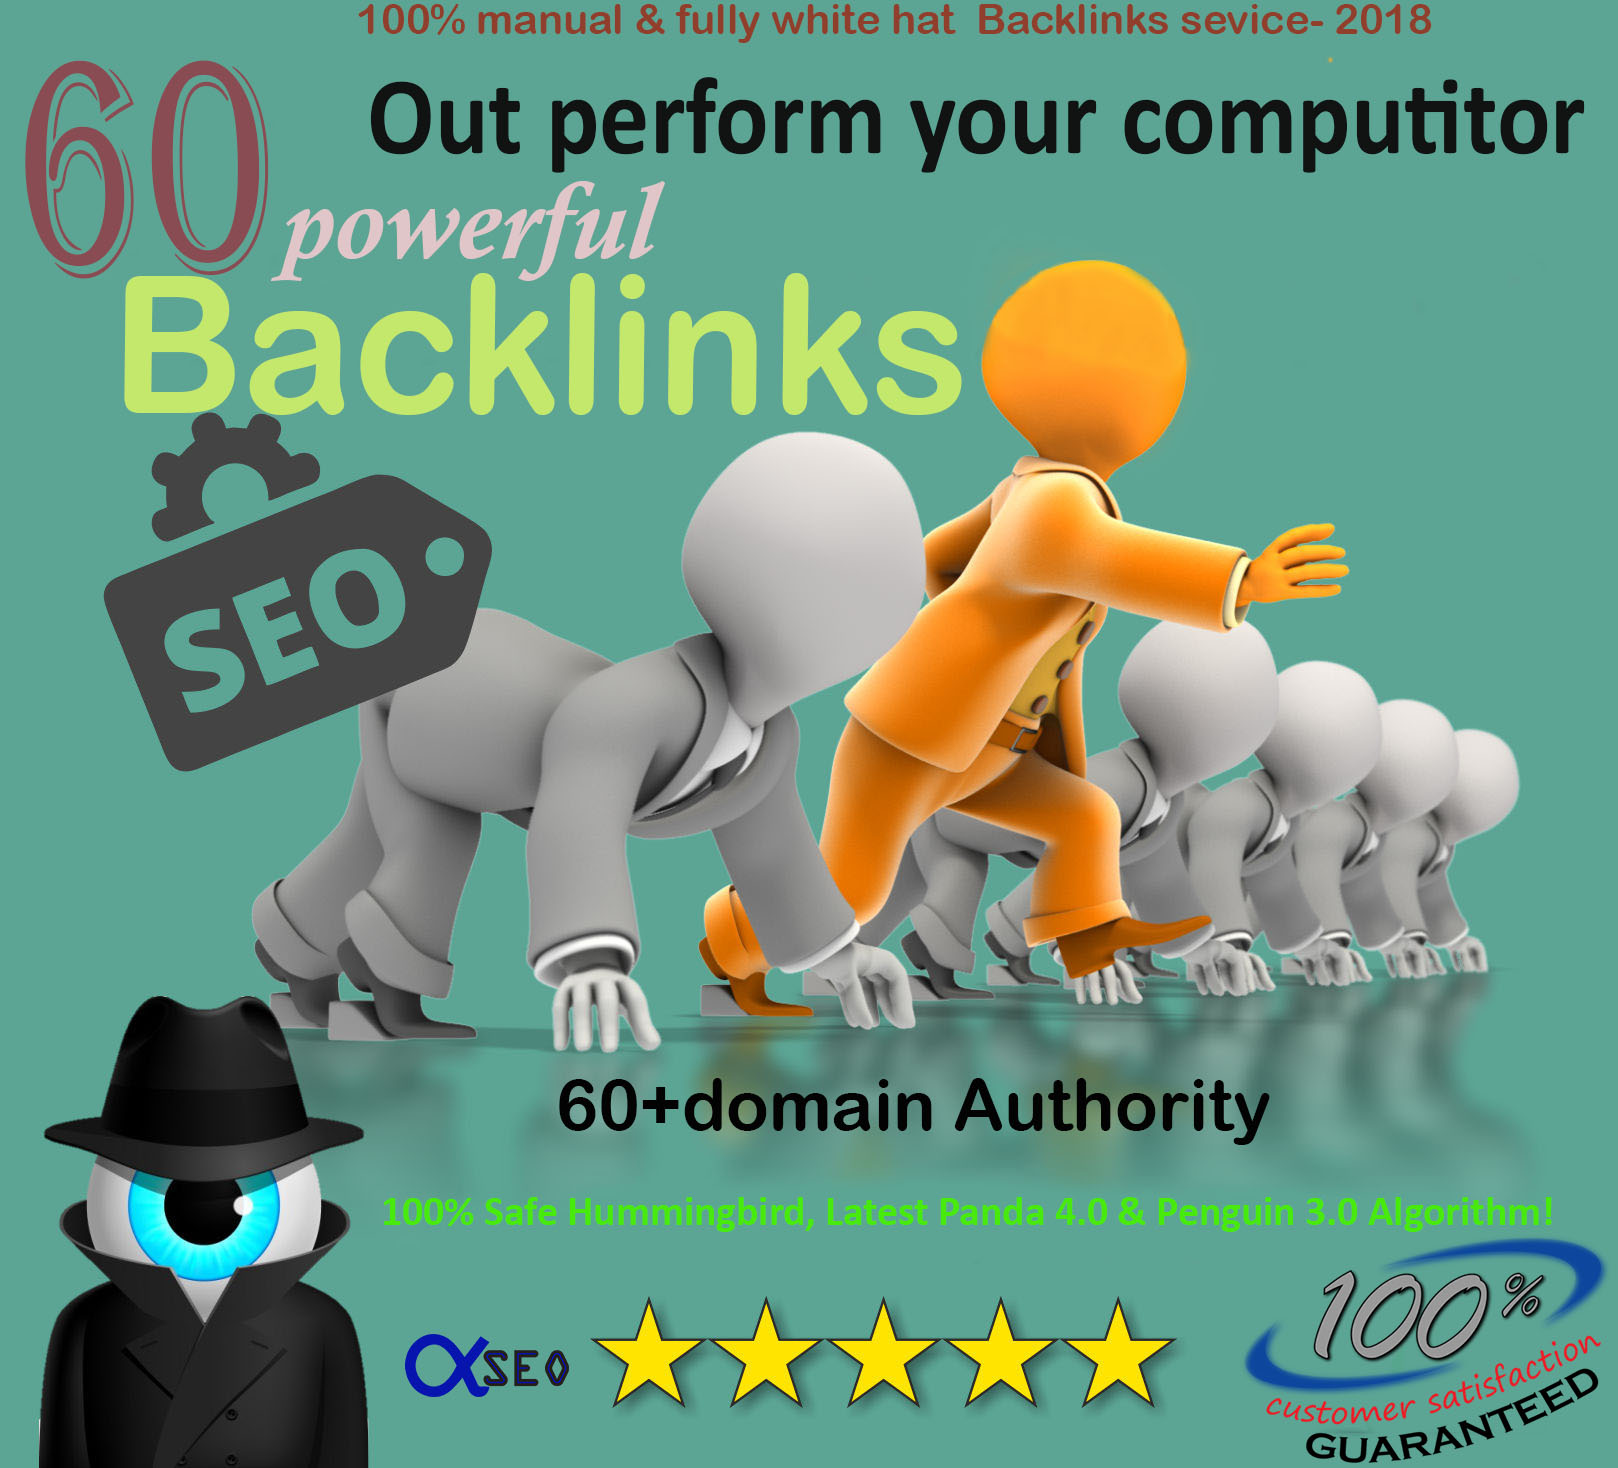 Latest 60 PR9 80+DA Safe SEO Powerful Backlinks Increase Your Google & others SERP rank